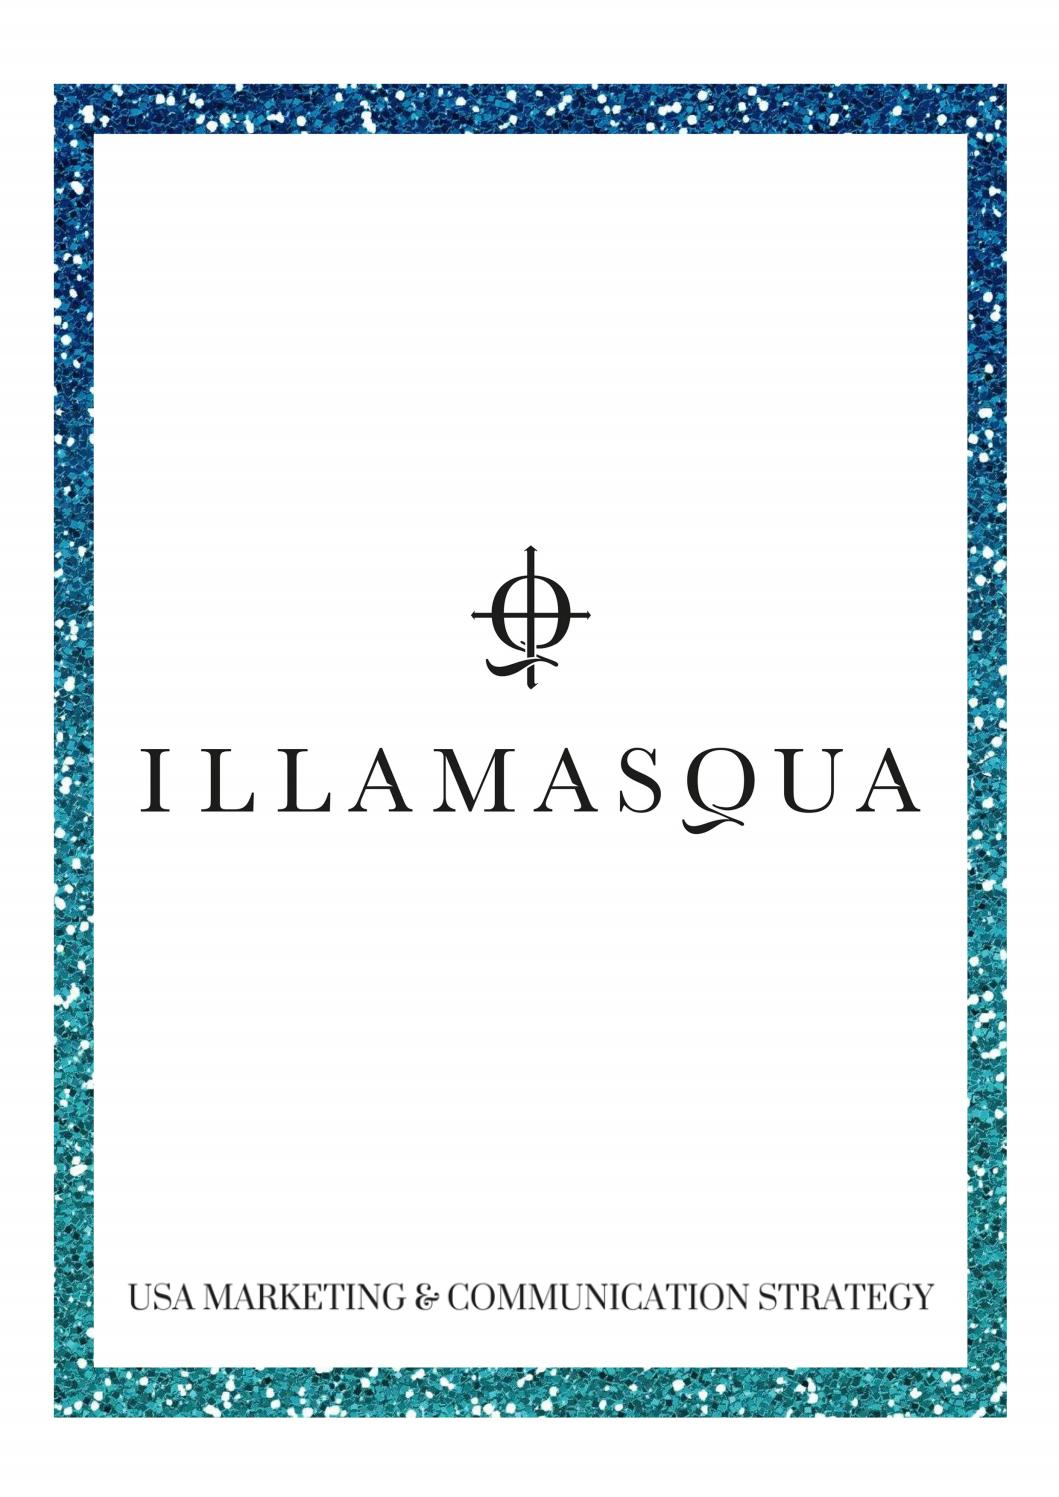 illamasqua marketing and communication strategy report by ruth illamasqua marketing and communication strategy report by ruth marlow issuu